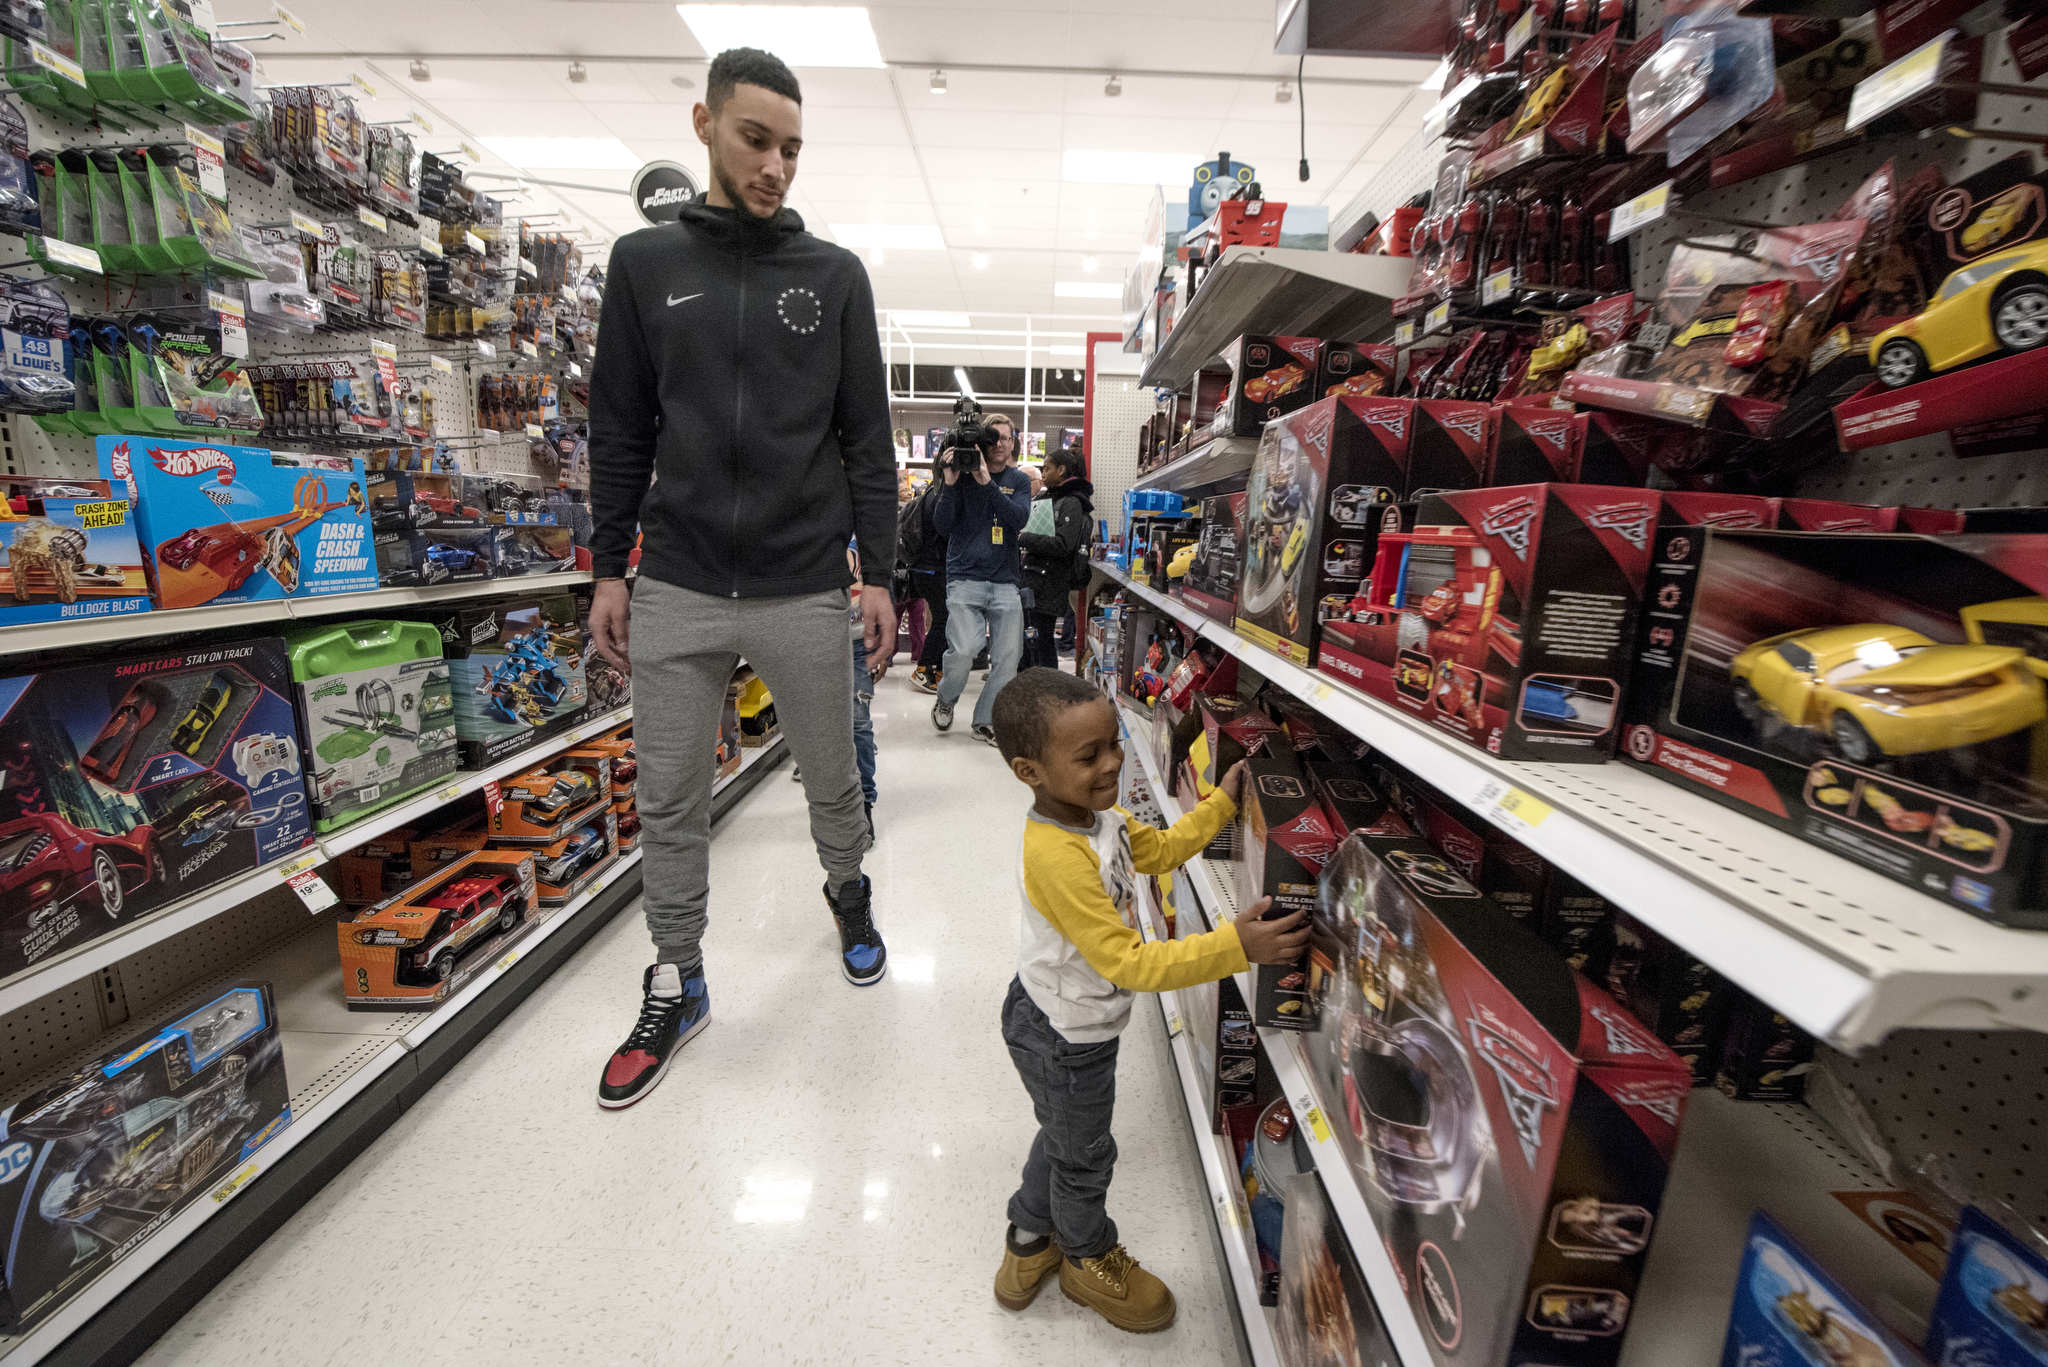 Sixers star rookie Ben Simmons watches Zaiden Johnson, 4, pick out a toy at the Target on Monument Road December 14, 2017. Simmons treated four families from the Unity in the Community organization of South Philadelphia to $1,000 each holiday shopping spree.